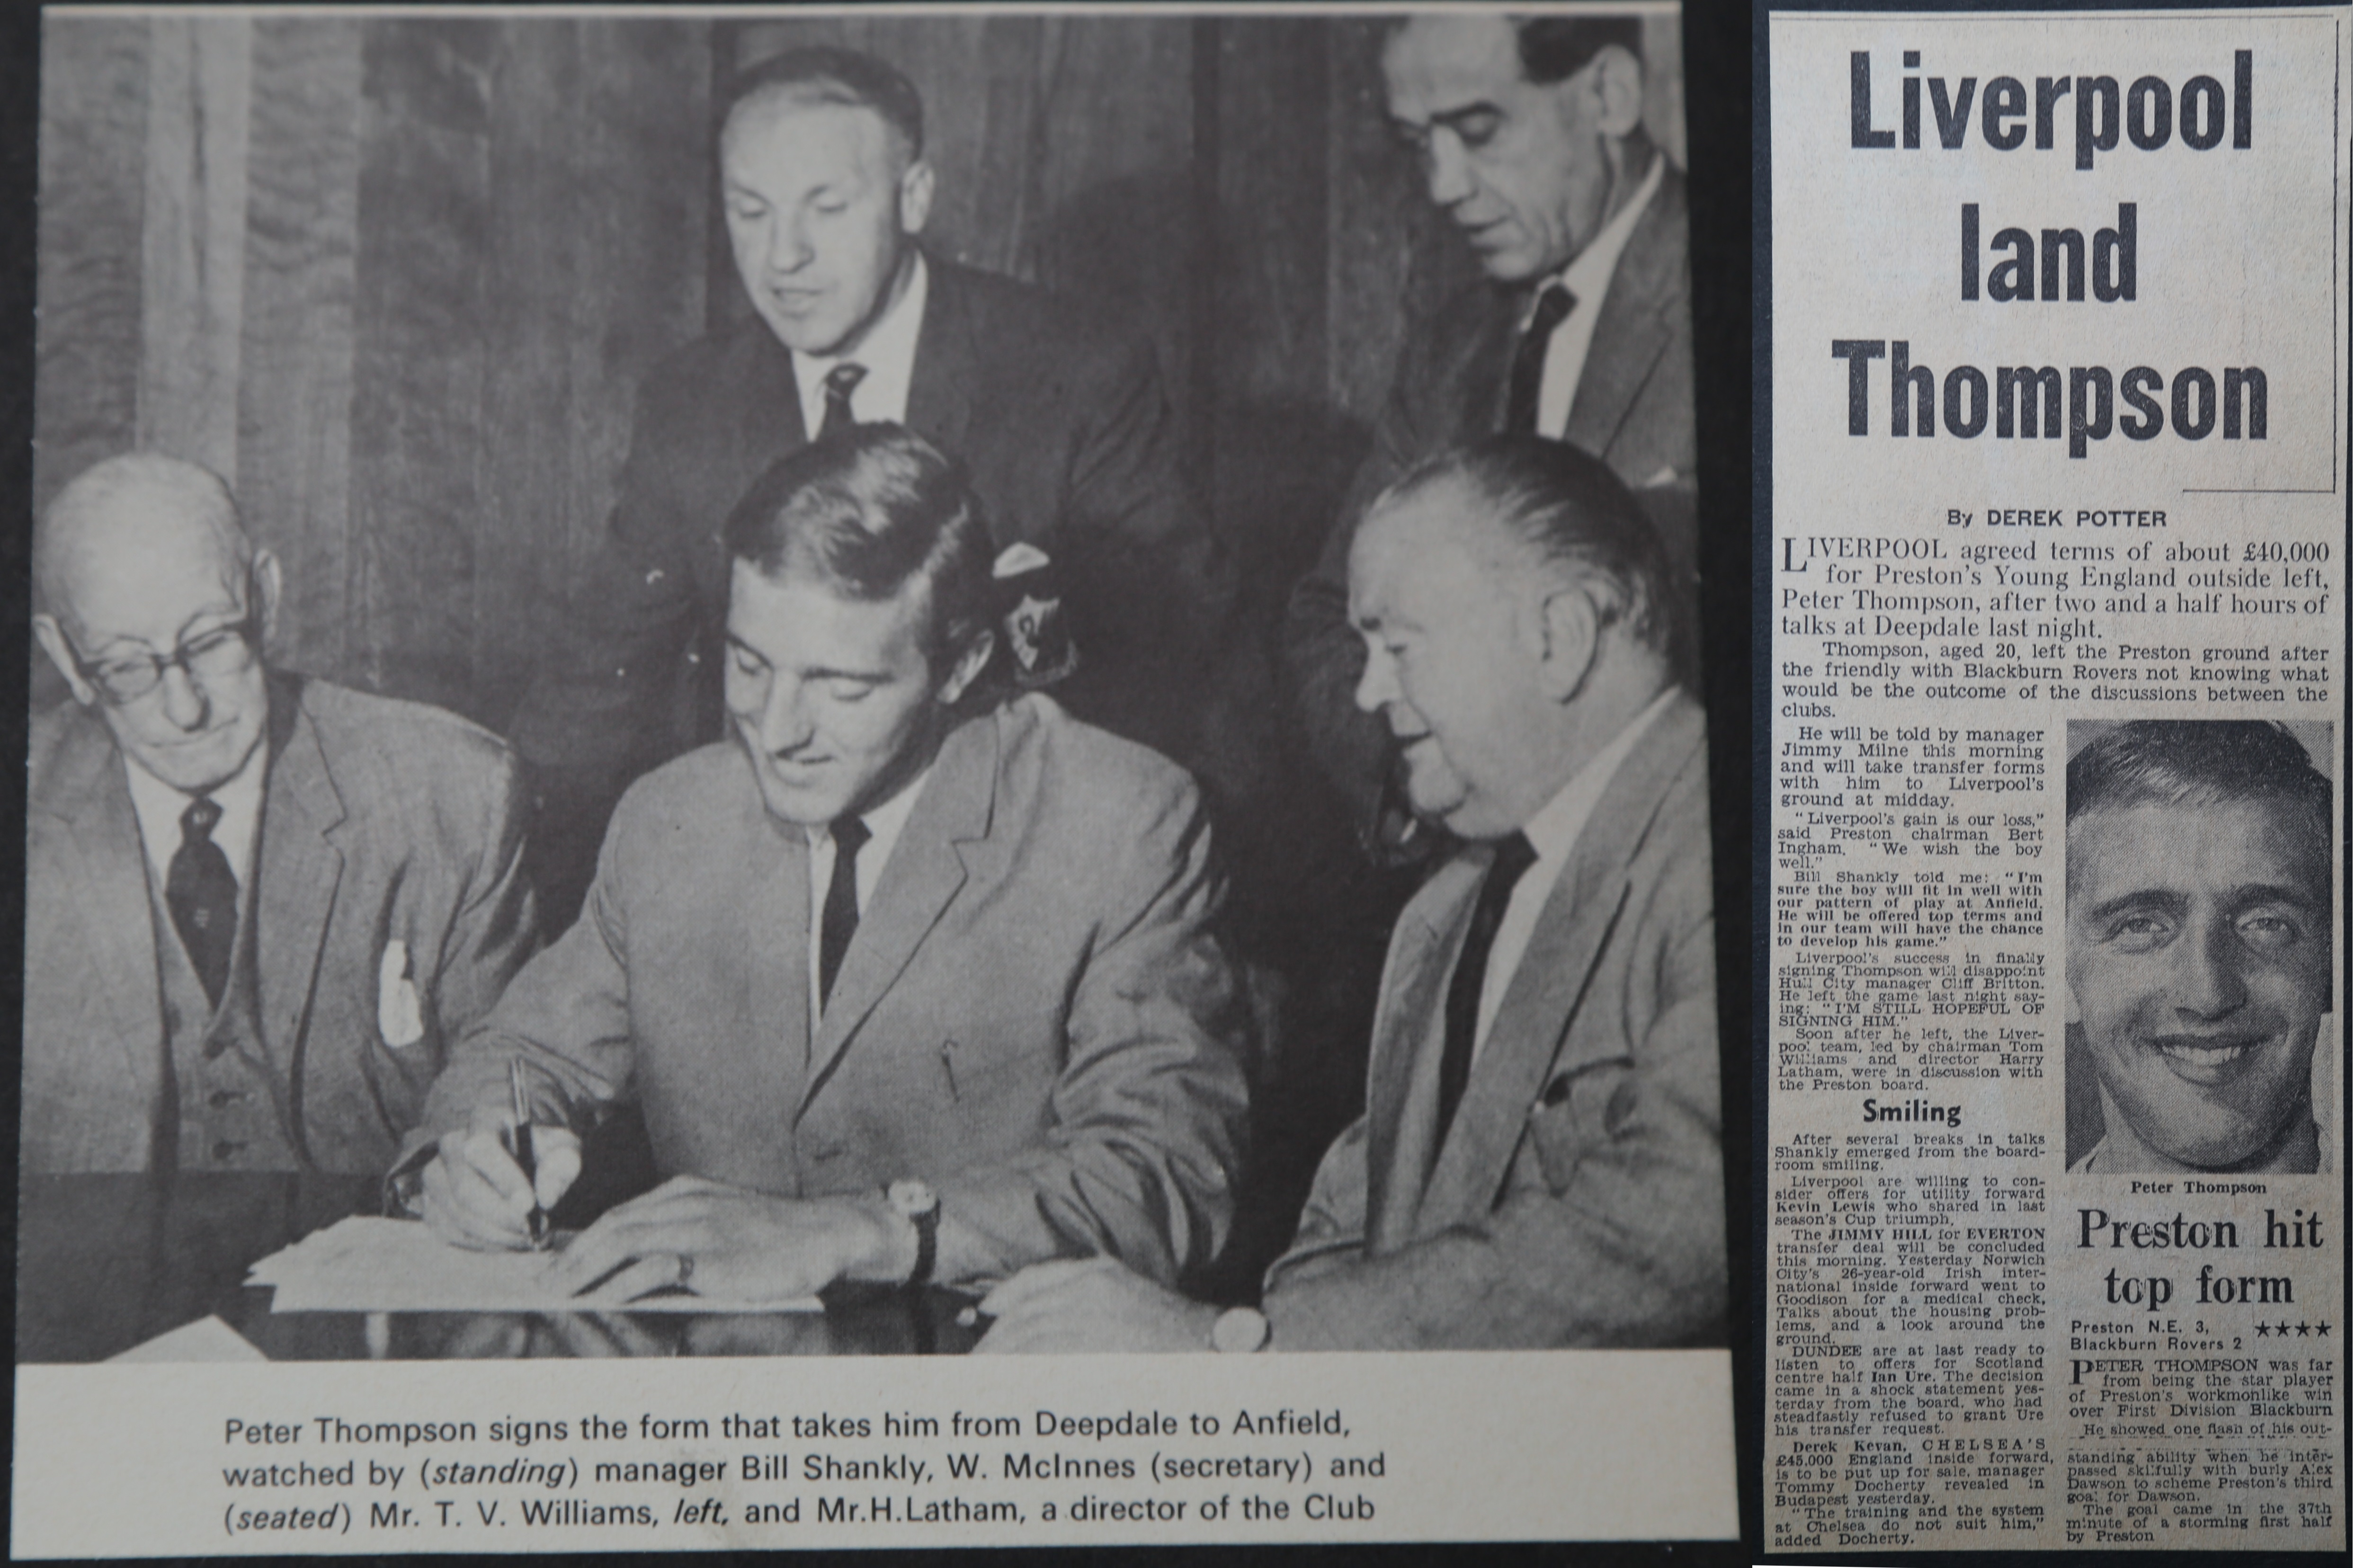 Thompson signs for the Reds! - August 1963